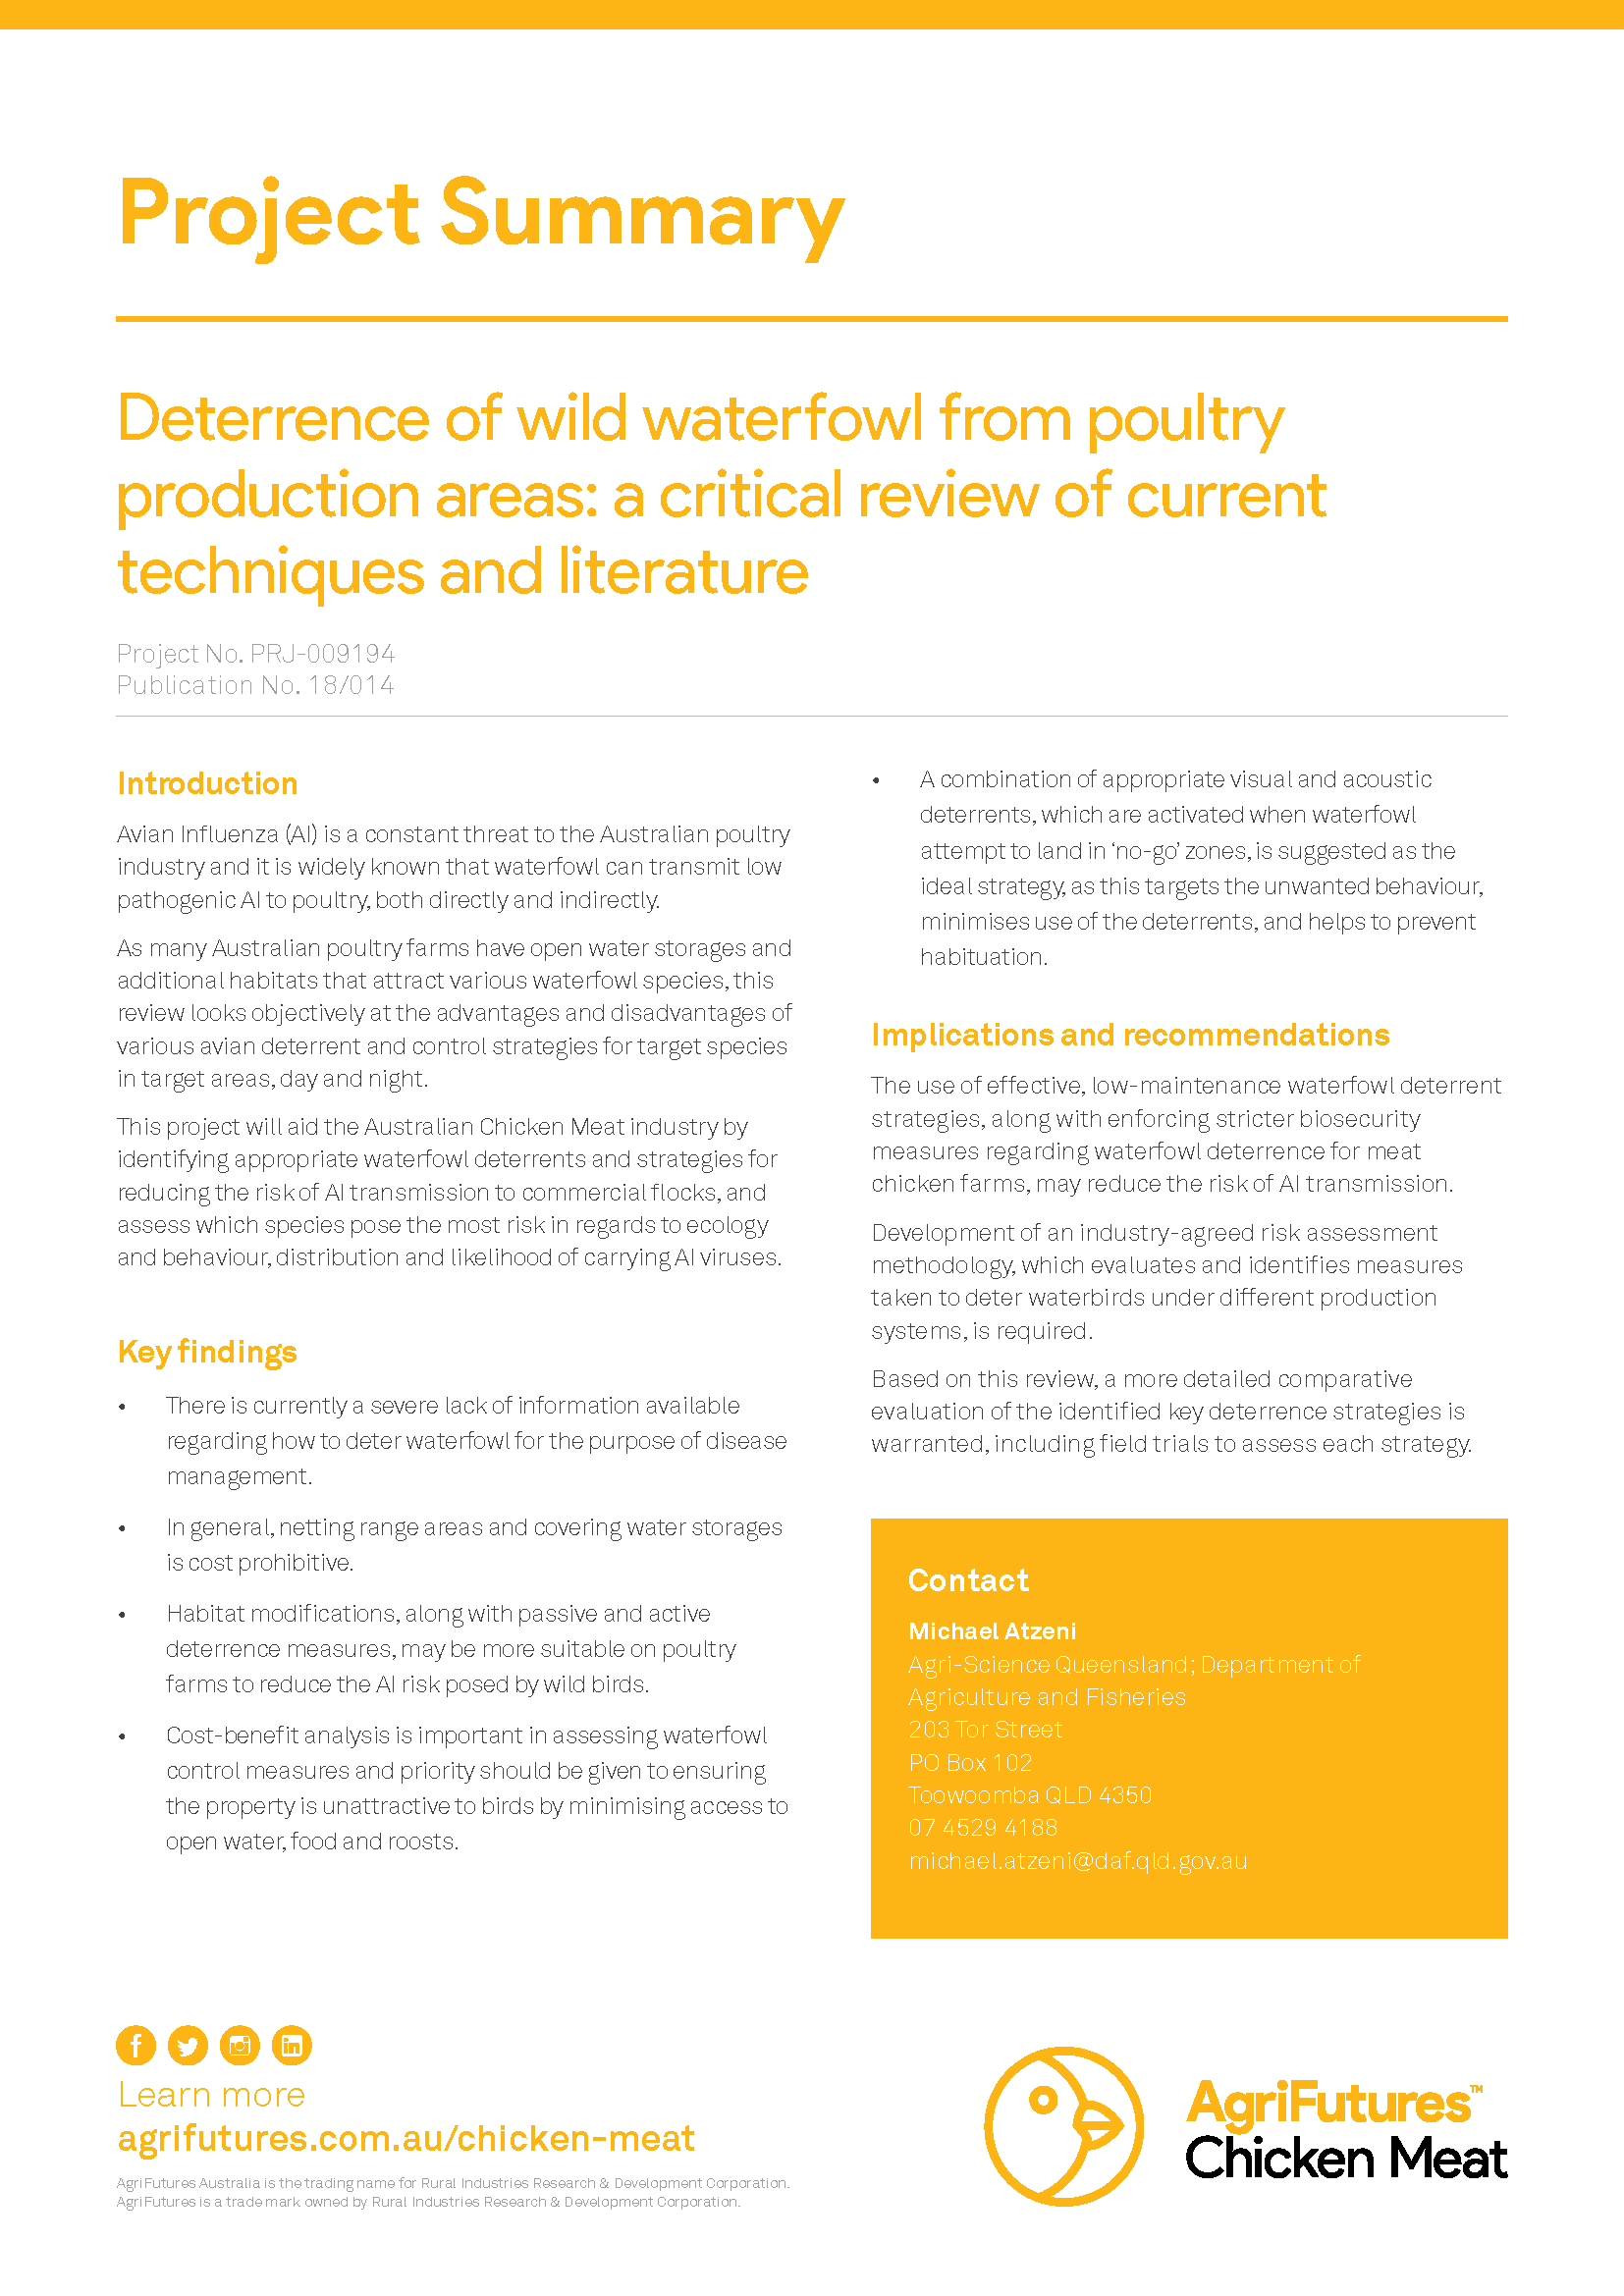 Deterrence of wild waterfowl from poultry production areas: a critical review of current techniques and literature - image